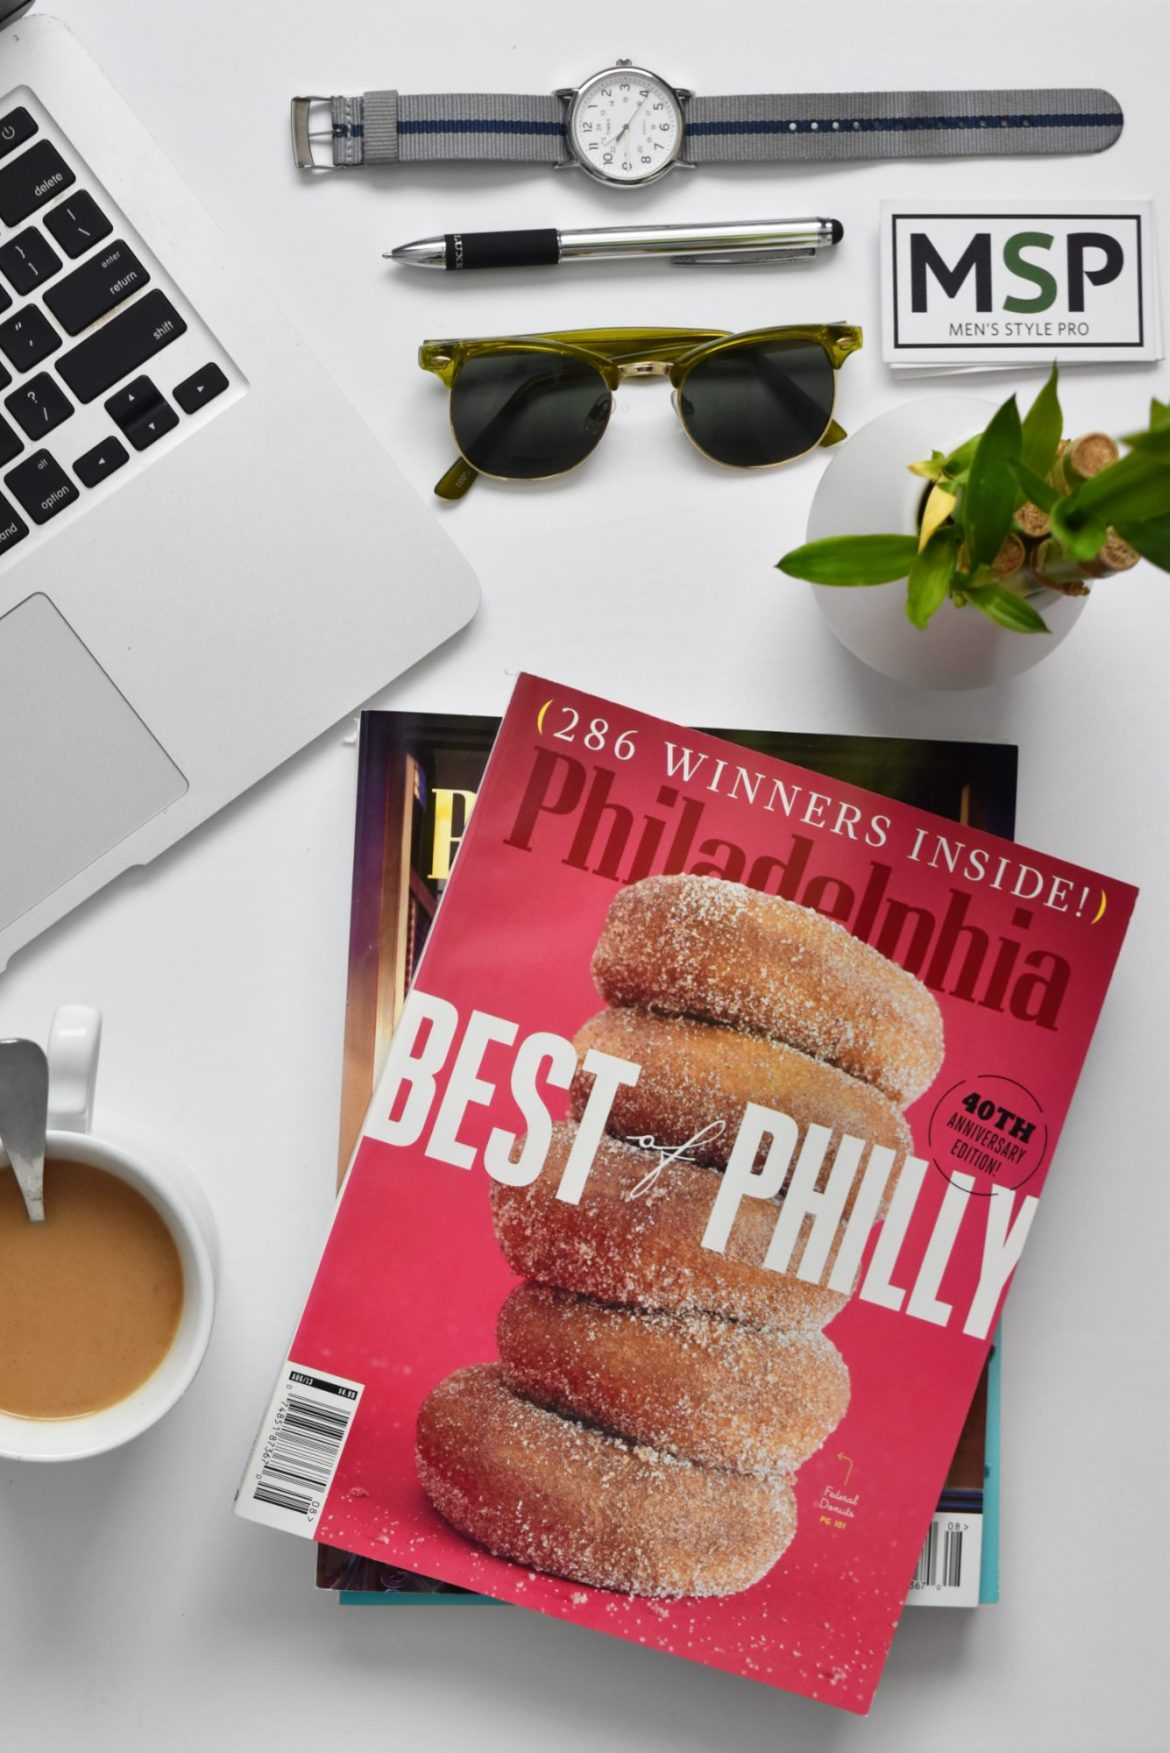 Philly Mag's Best of Philly x Men's Style Pro Discount Code